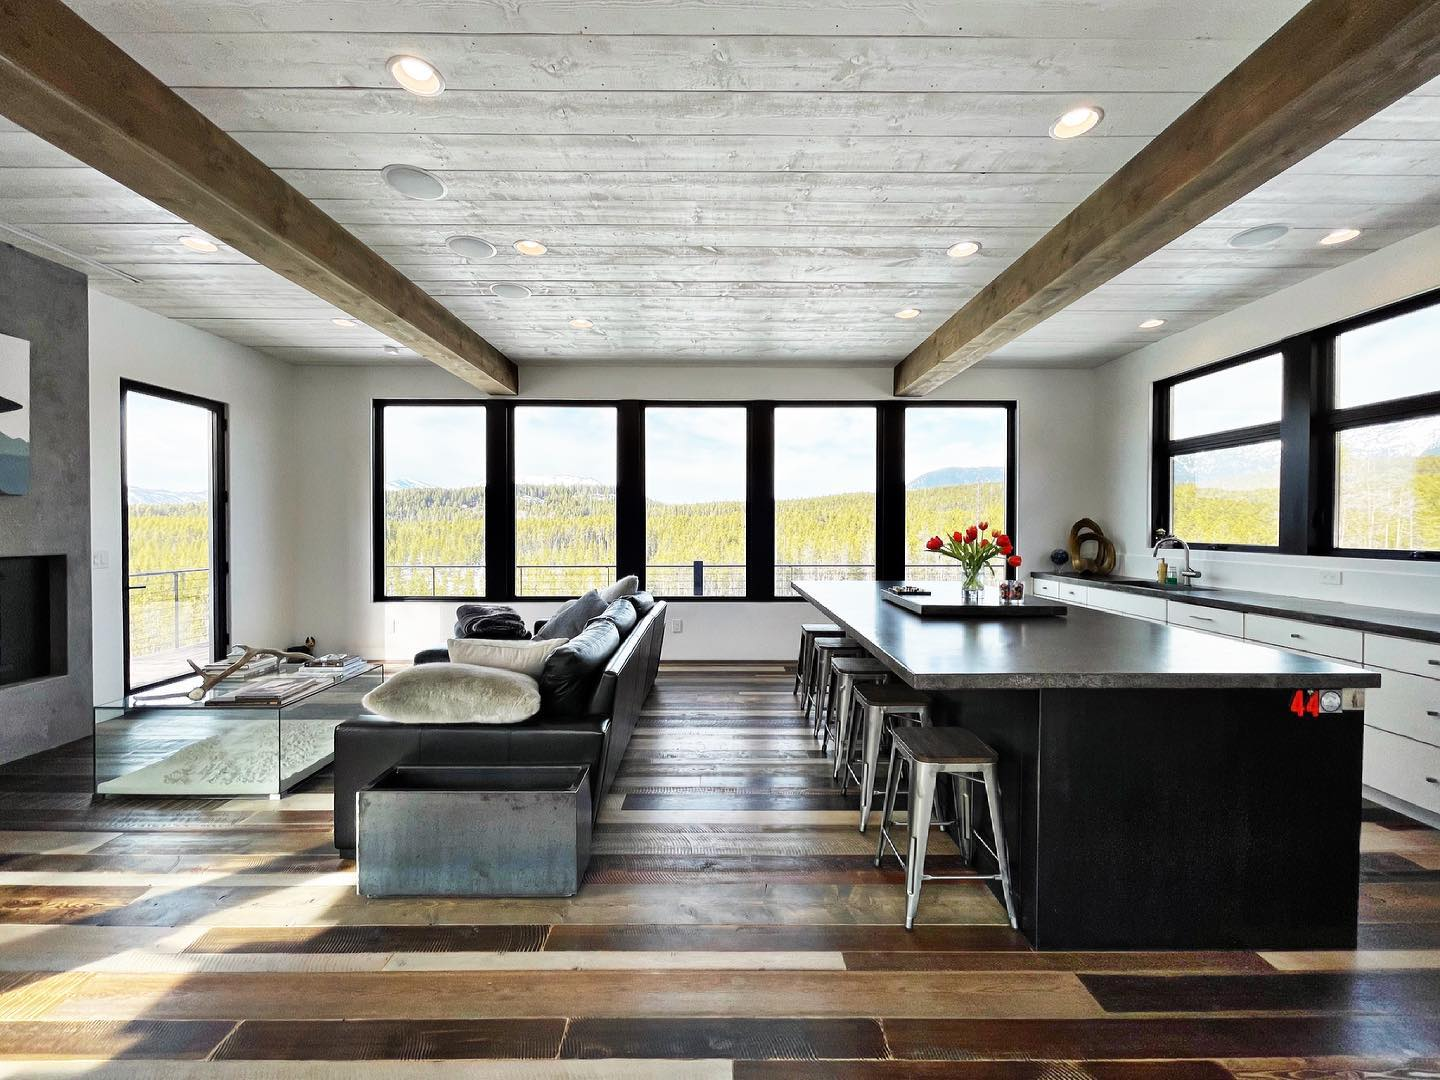 This space is only 28 x 28 feet, but context to how large rooms can live if they designed right! And of course, the windows really help! @cmtfabrication @awiwoodworks whitefish custom home builder